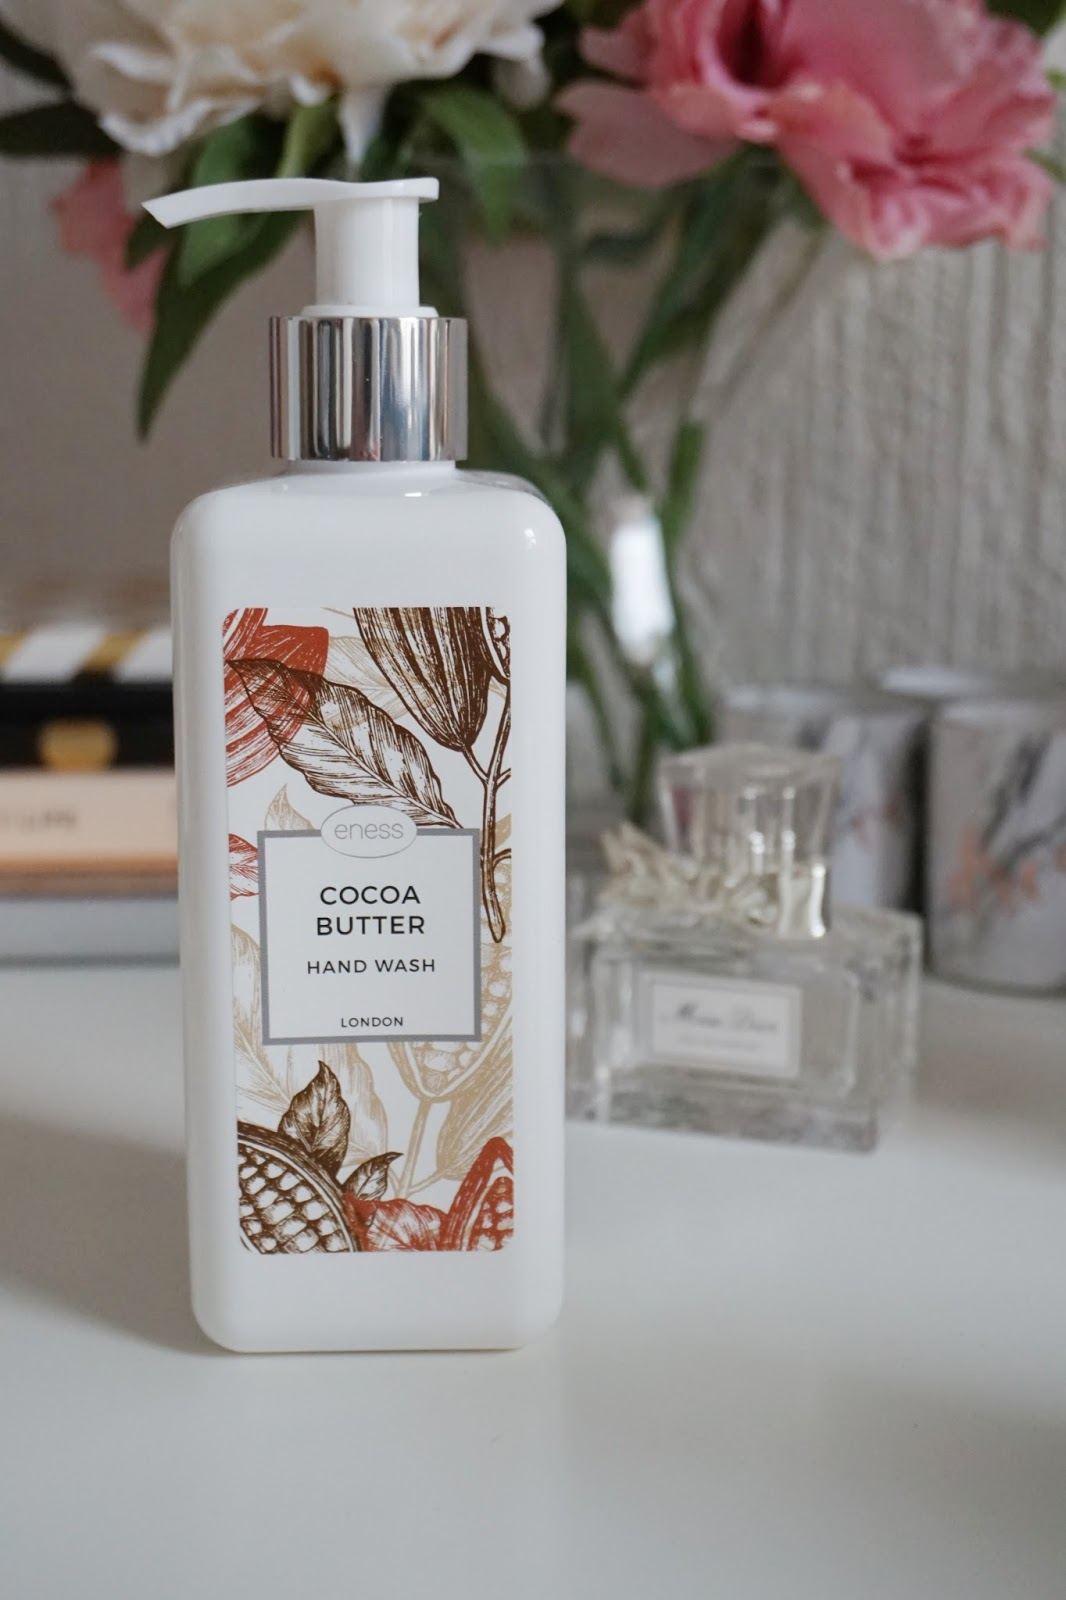 The Cocoa Butter hand wash cleans your hands and makes them feel super soft